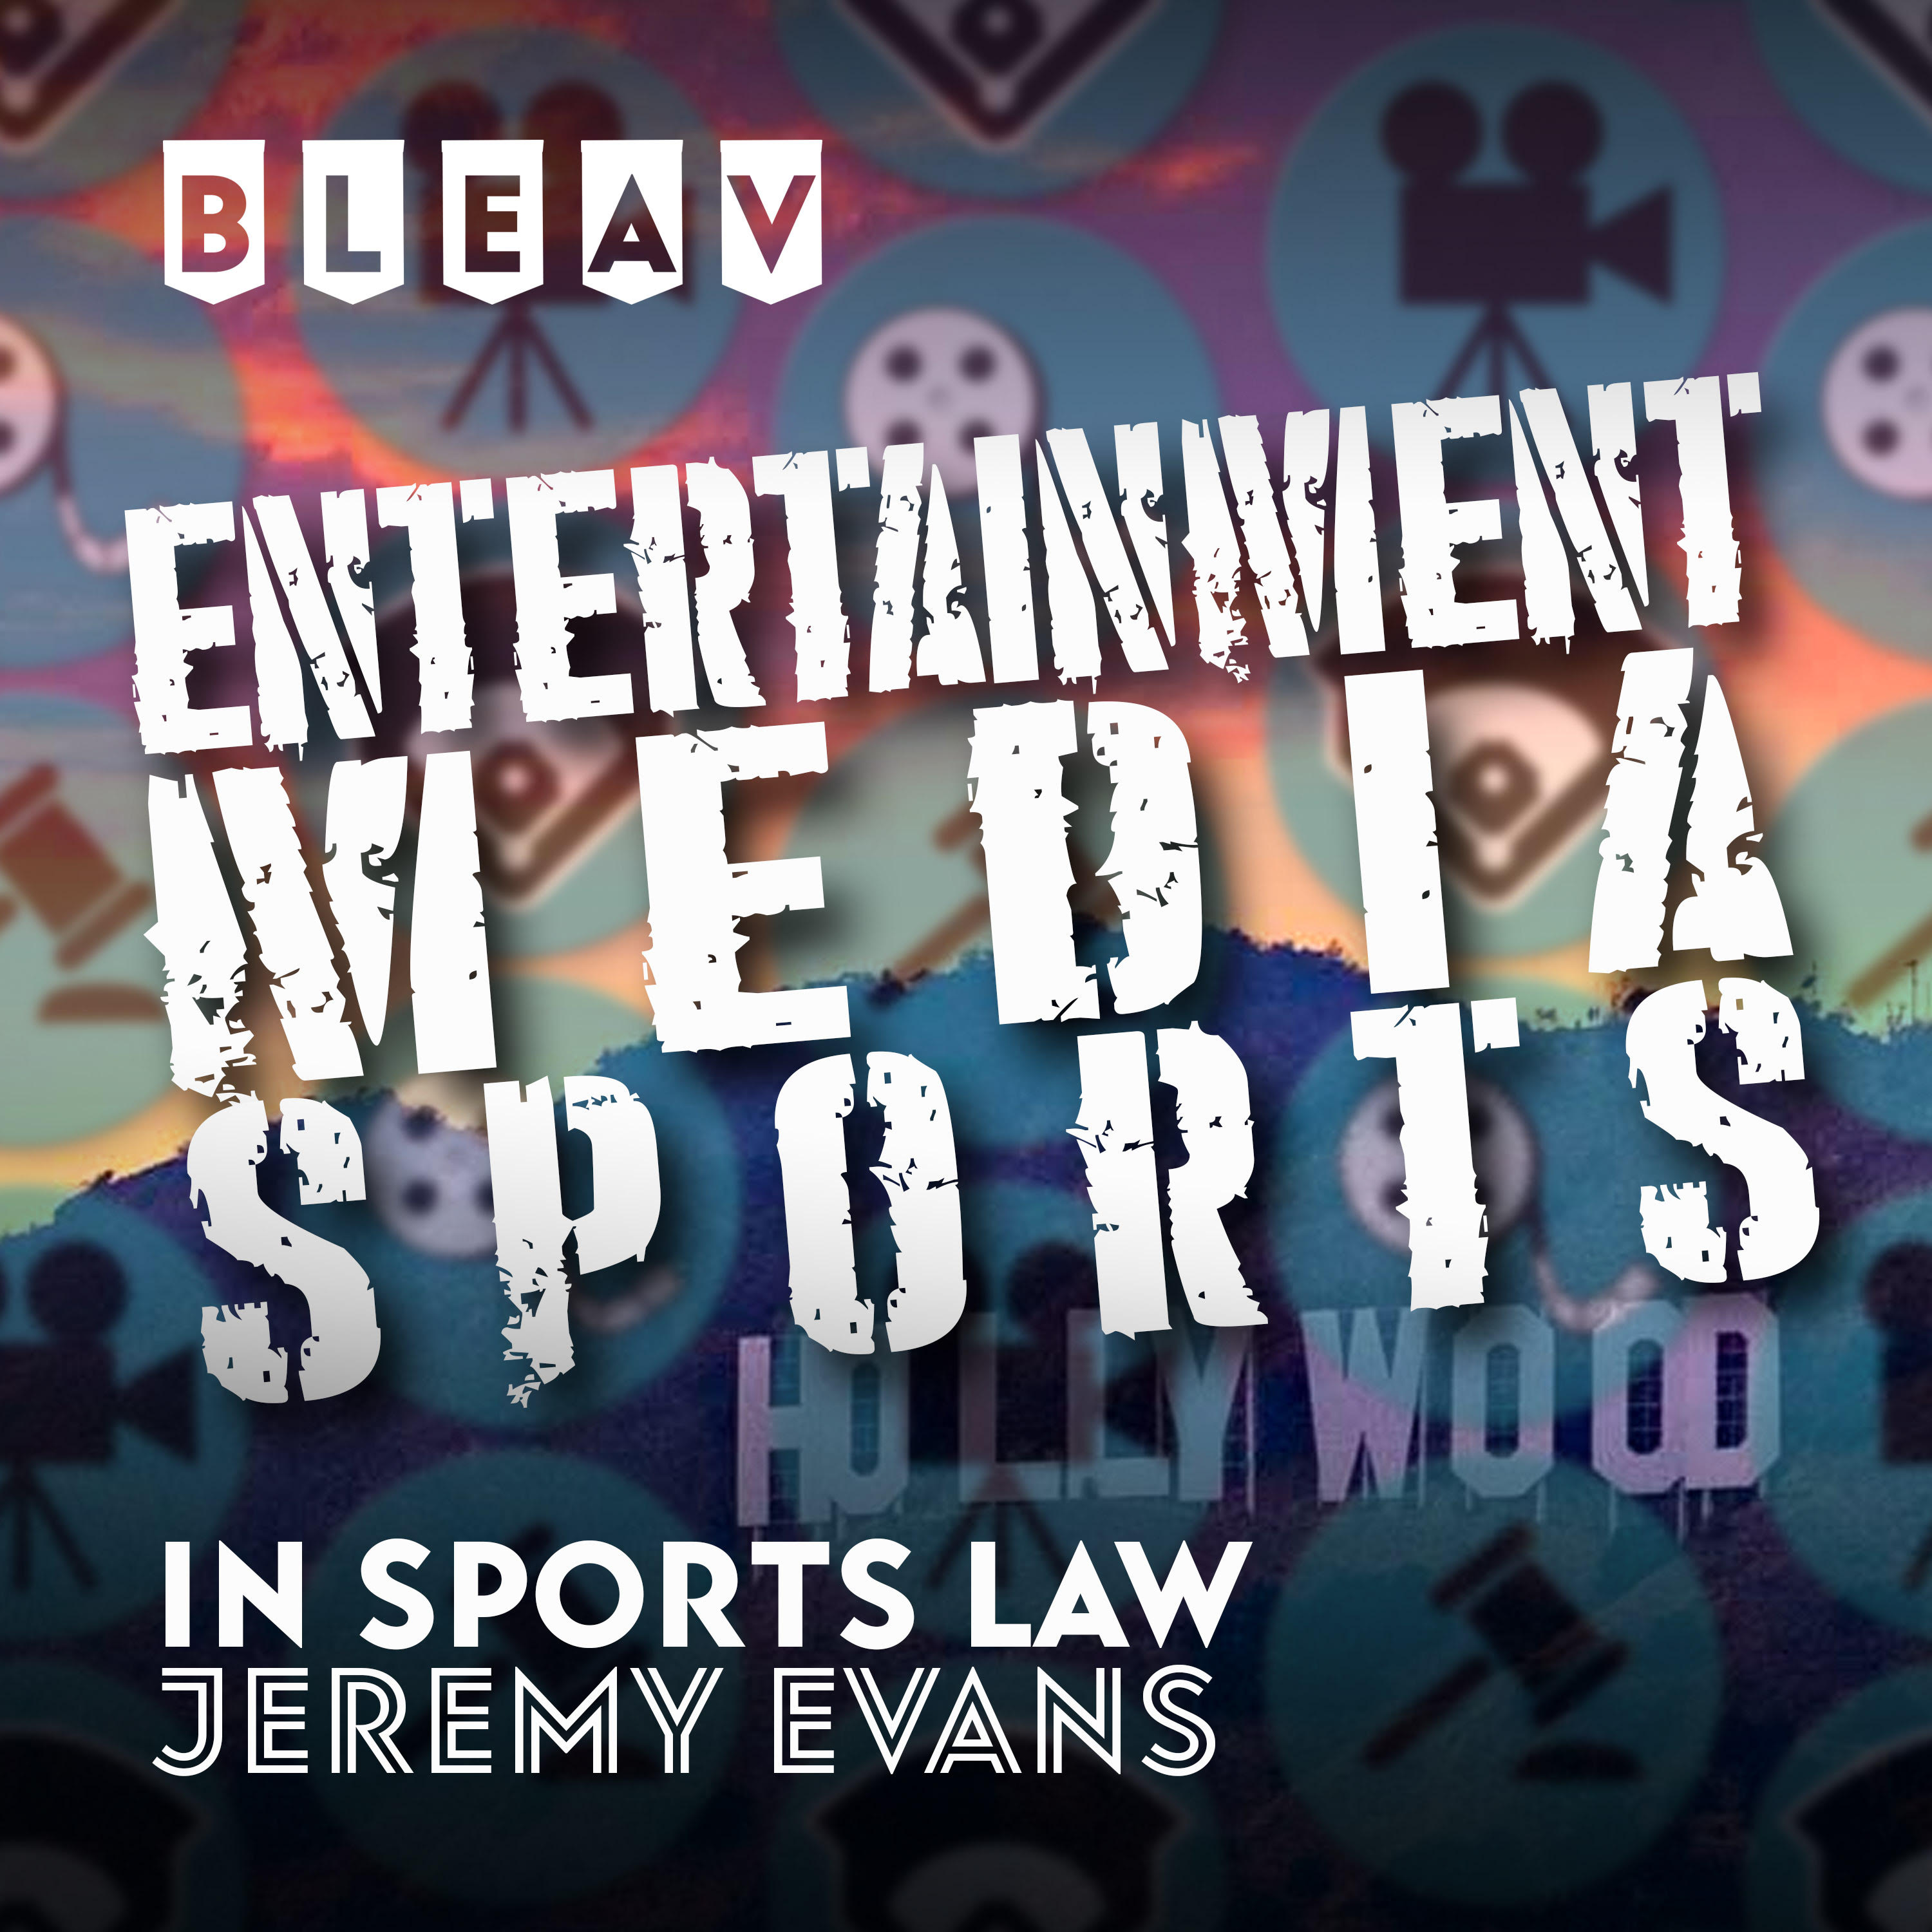 Jeremy Evans podcast 'Bleav in Sports Law' ranked no. 1 sports law podcast in the World